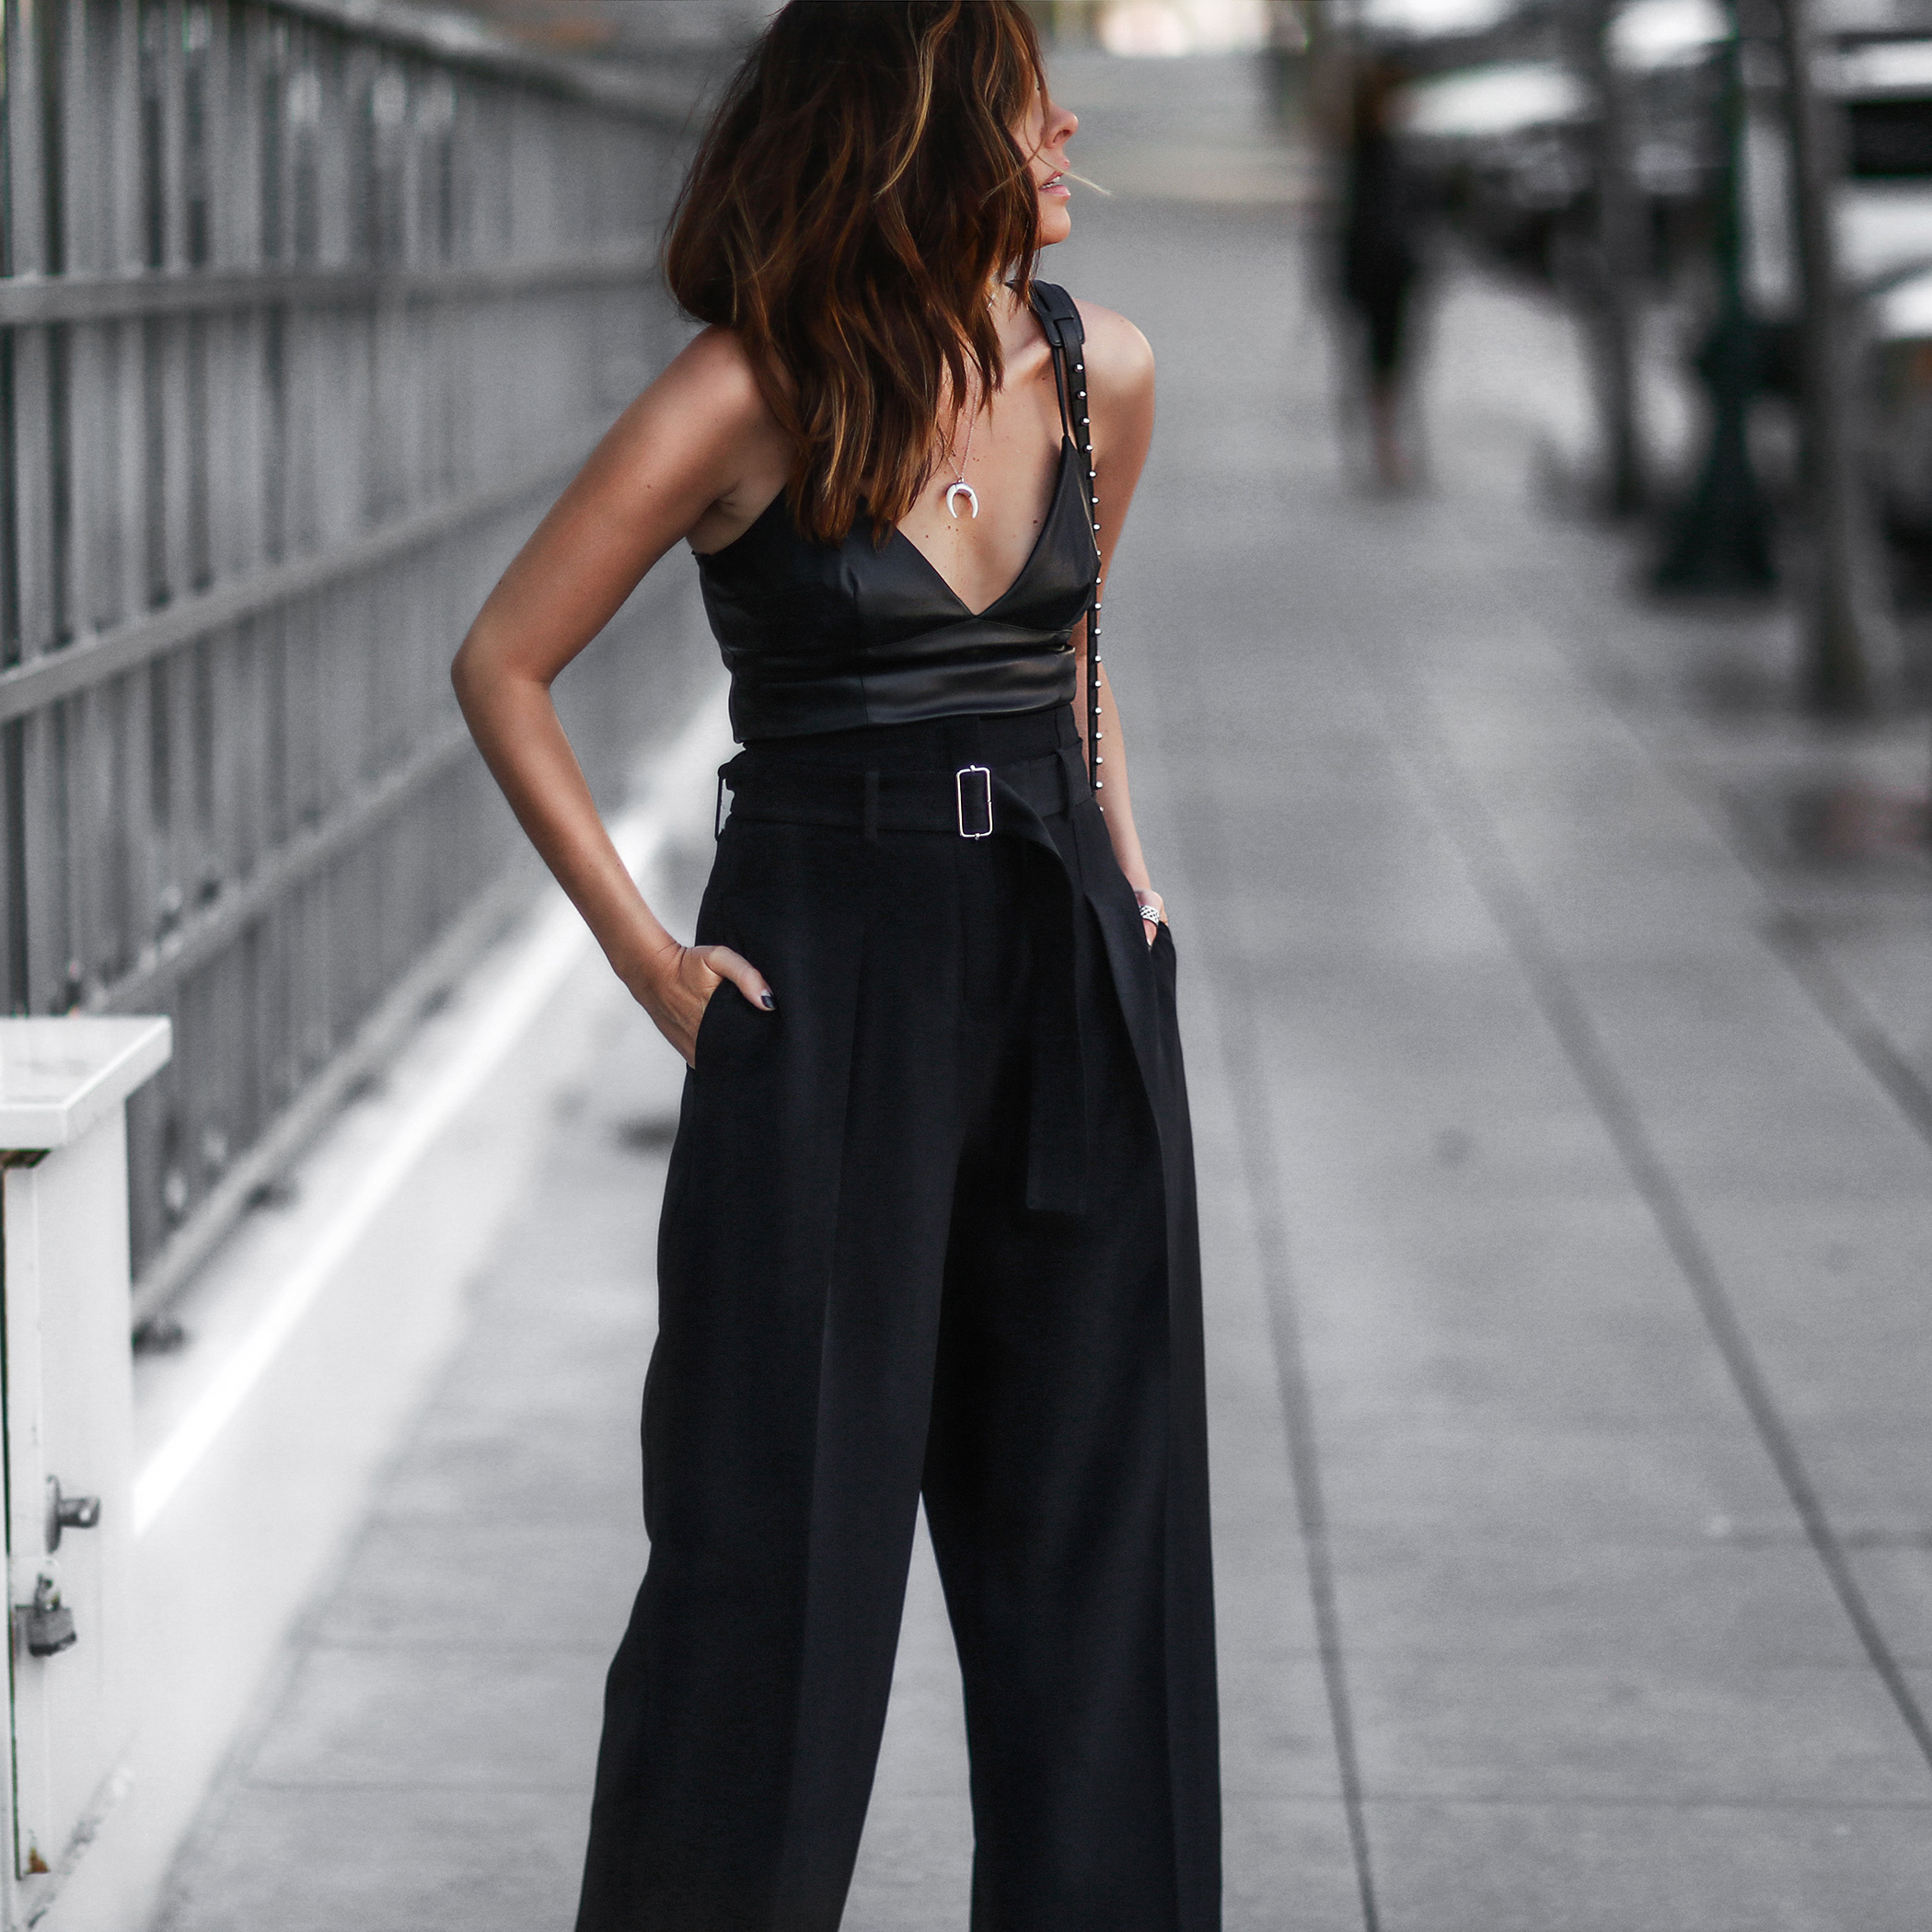 black wide leg trousers, black crop top cami, studded purse